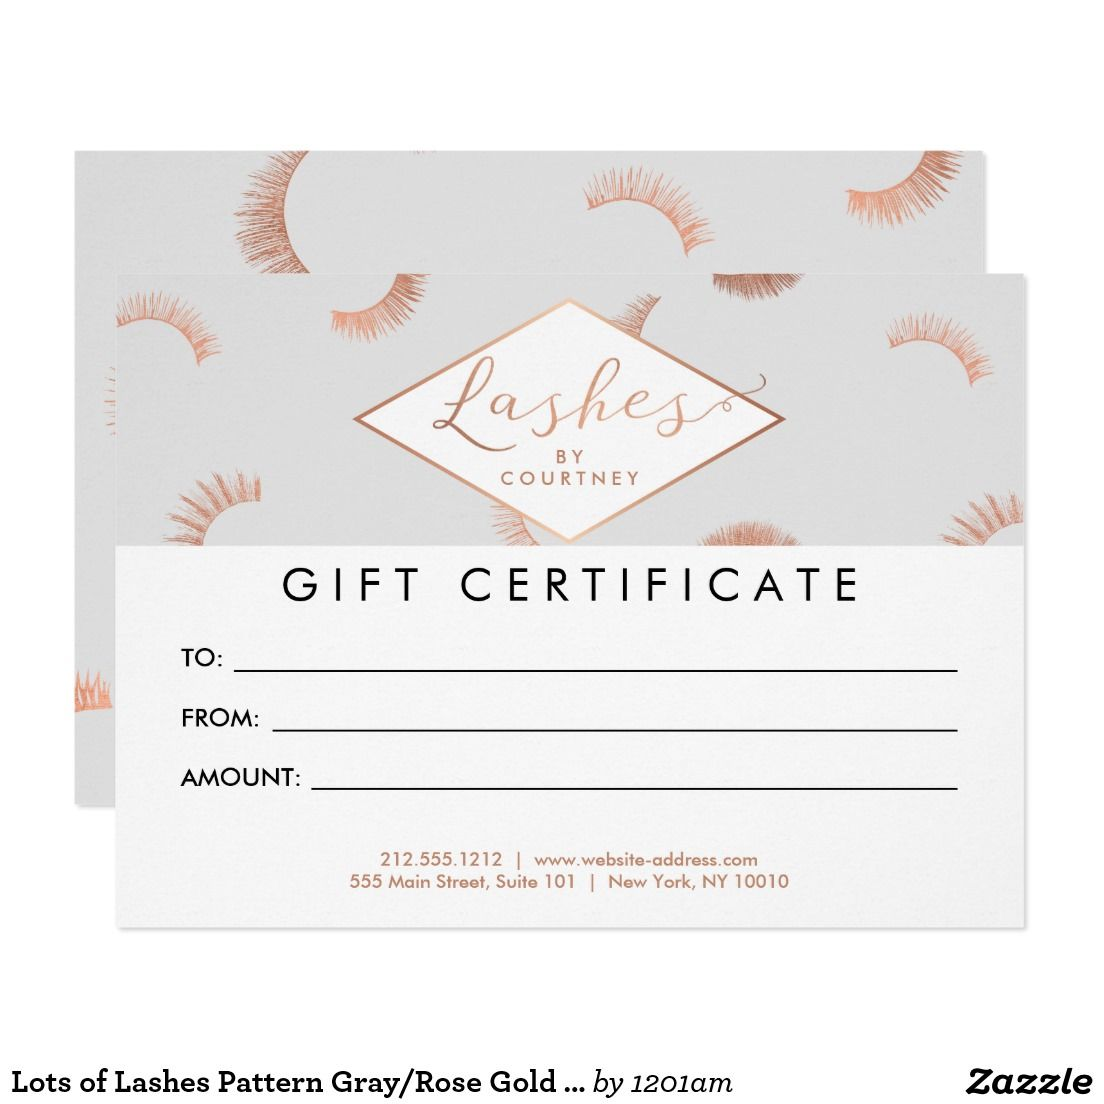 lots of lashes pattern gray rose gold gift card gray gift cards lash extensions salon gray rose gold customizable gift certificate cards